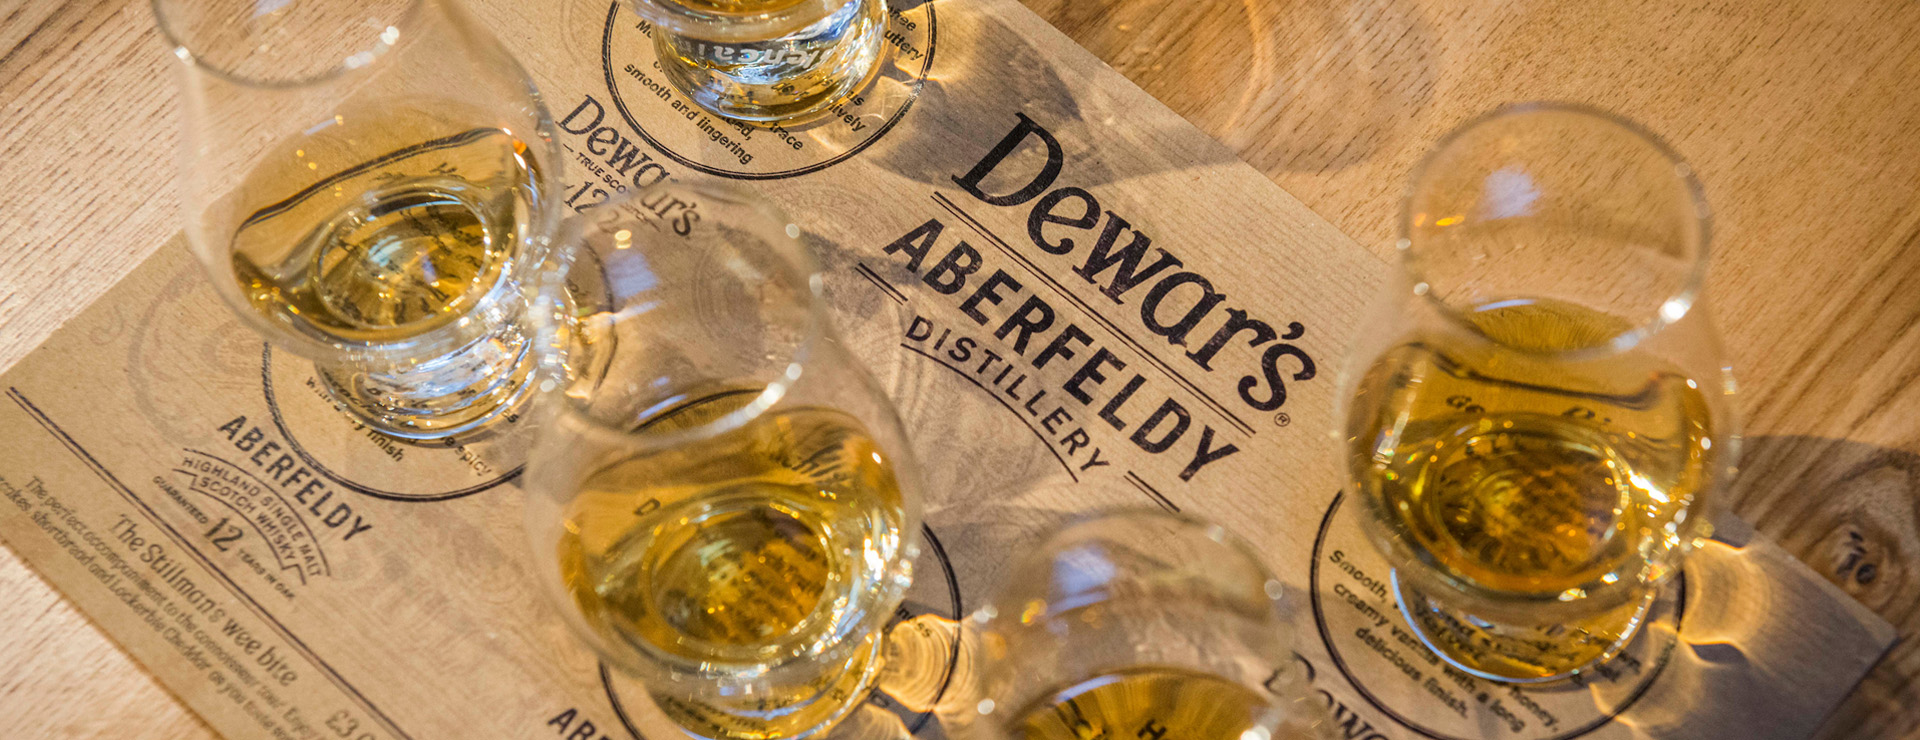 Connoisseur Tour - the ultimate whisky tasting experience